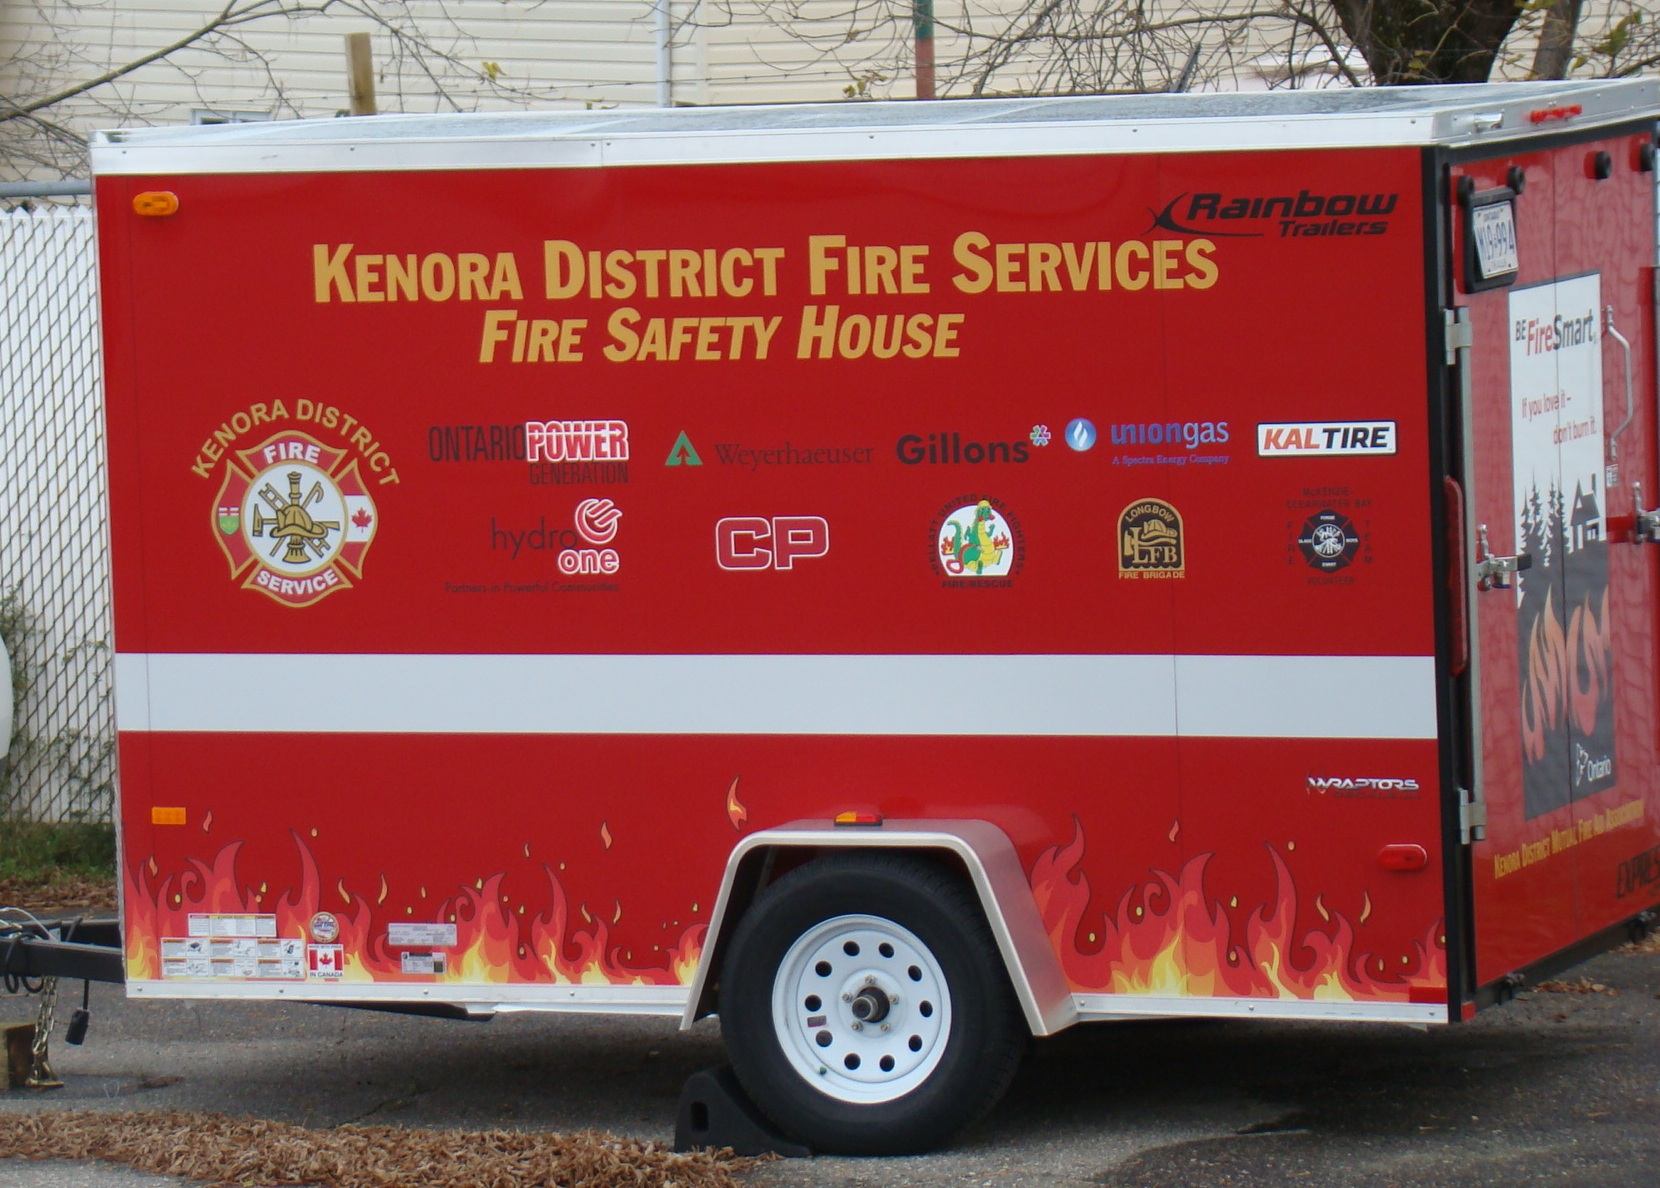 Image of fire safety house trailer